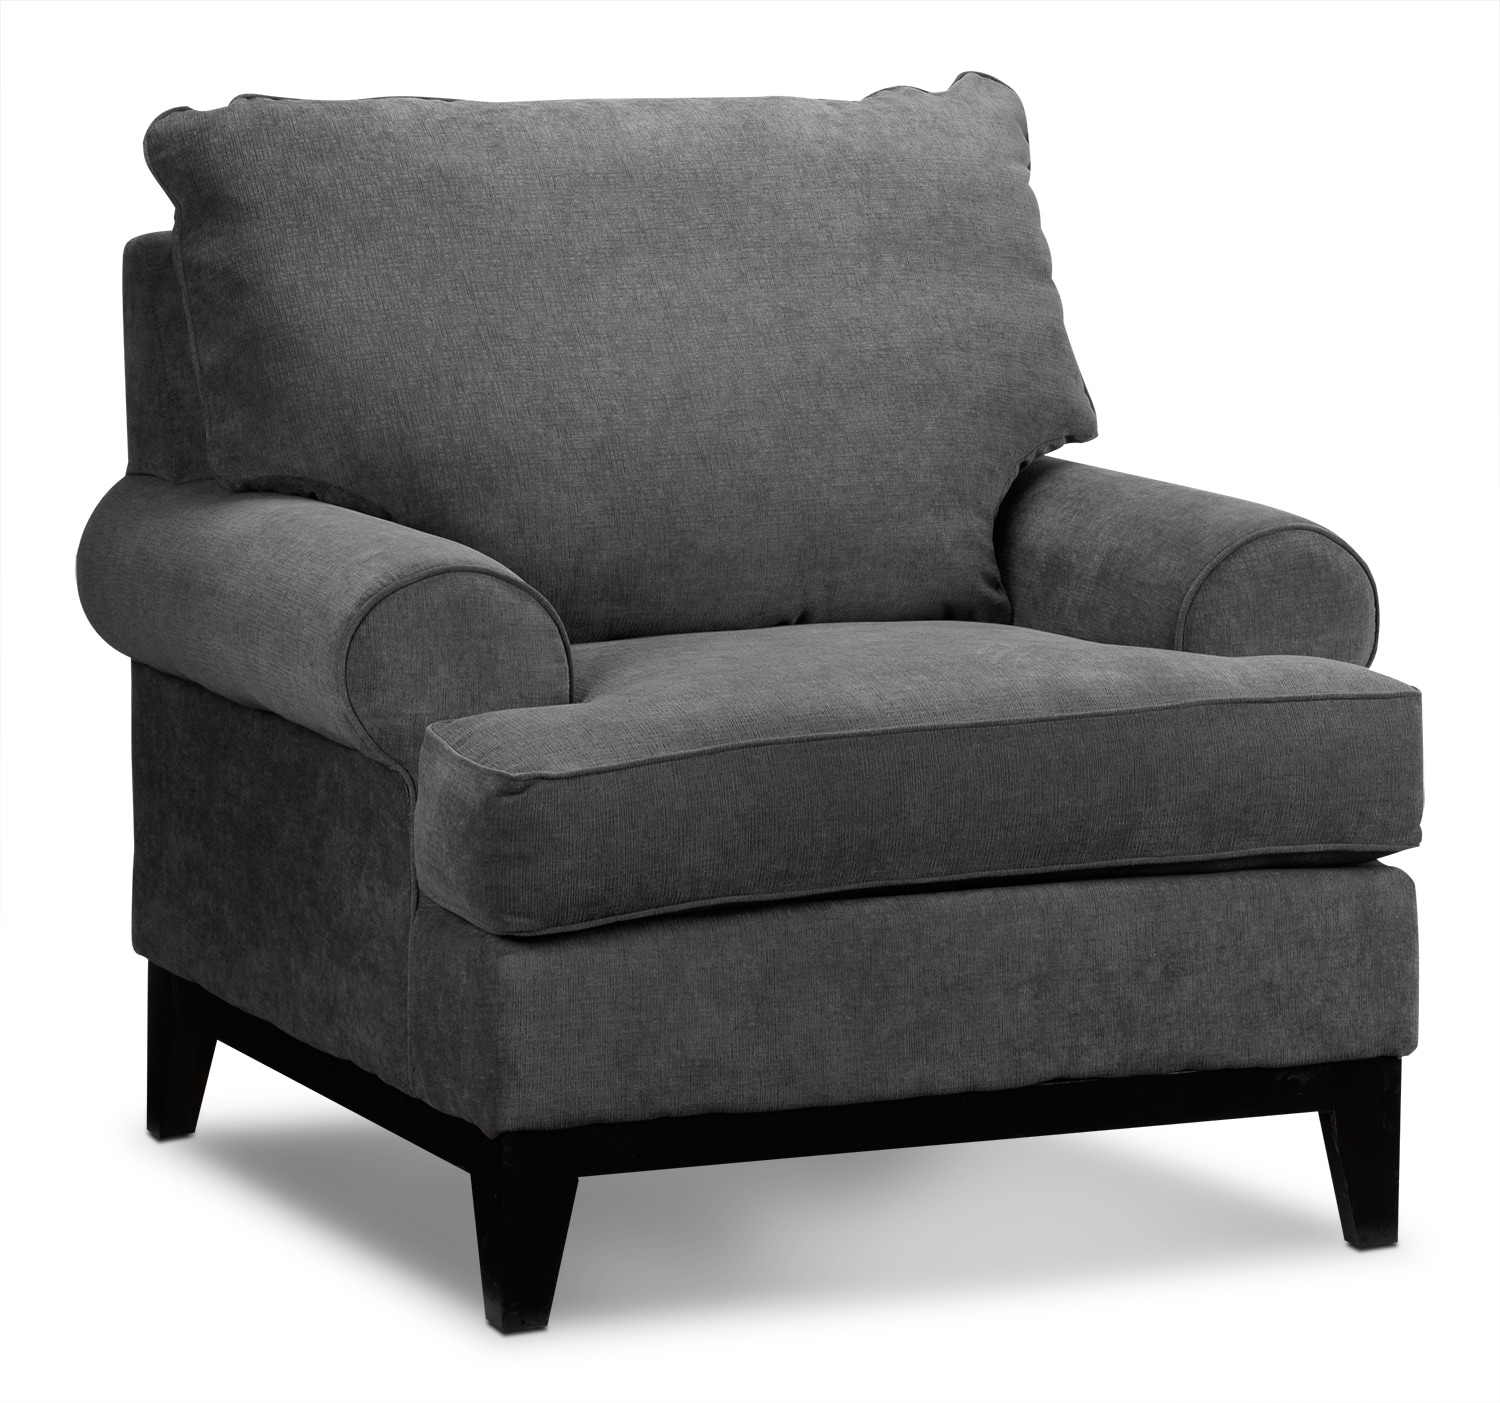 Crizia Chair - Dark Grey